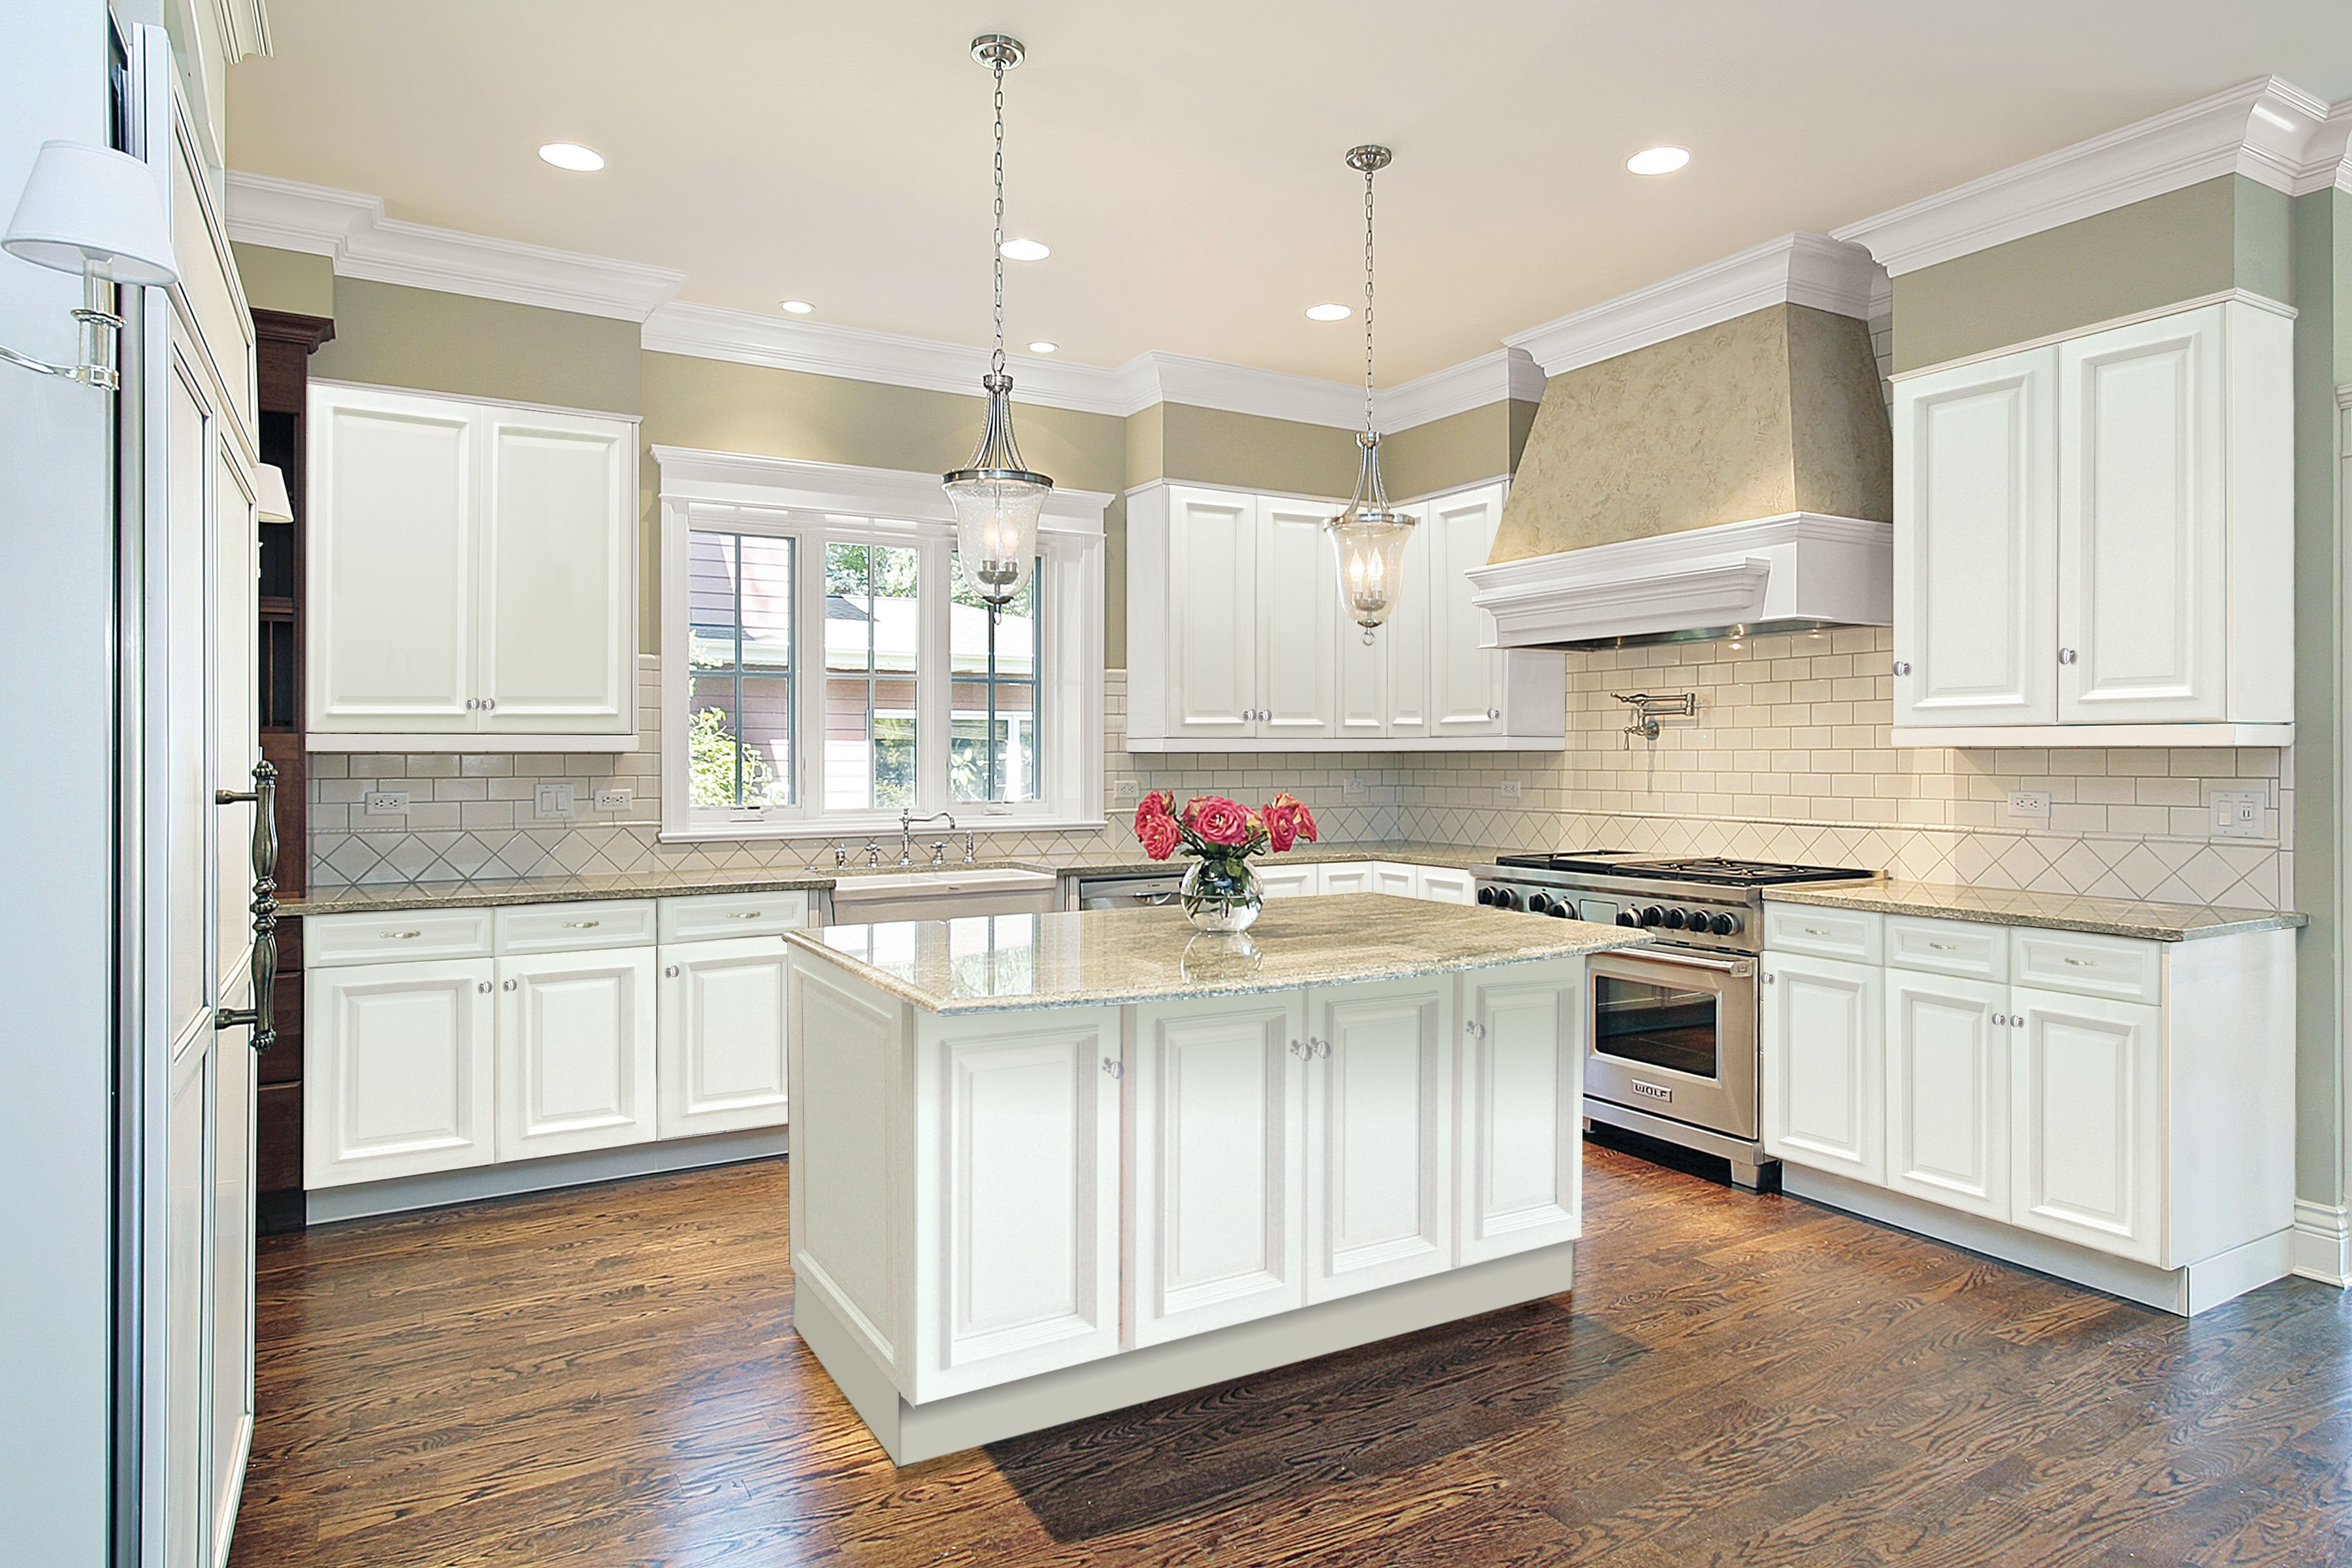 Ghi Nantucket Linen Waverly Cabinets Cost Of Kitchen Cabinets Kitchen Cabinets For Sale Elegant Kitchens